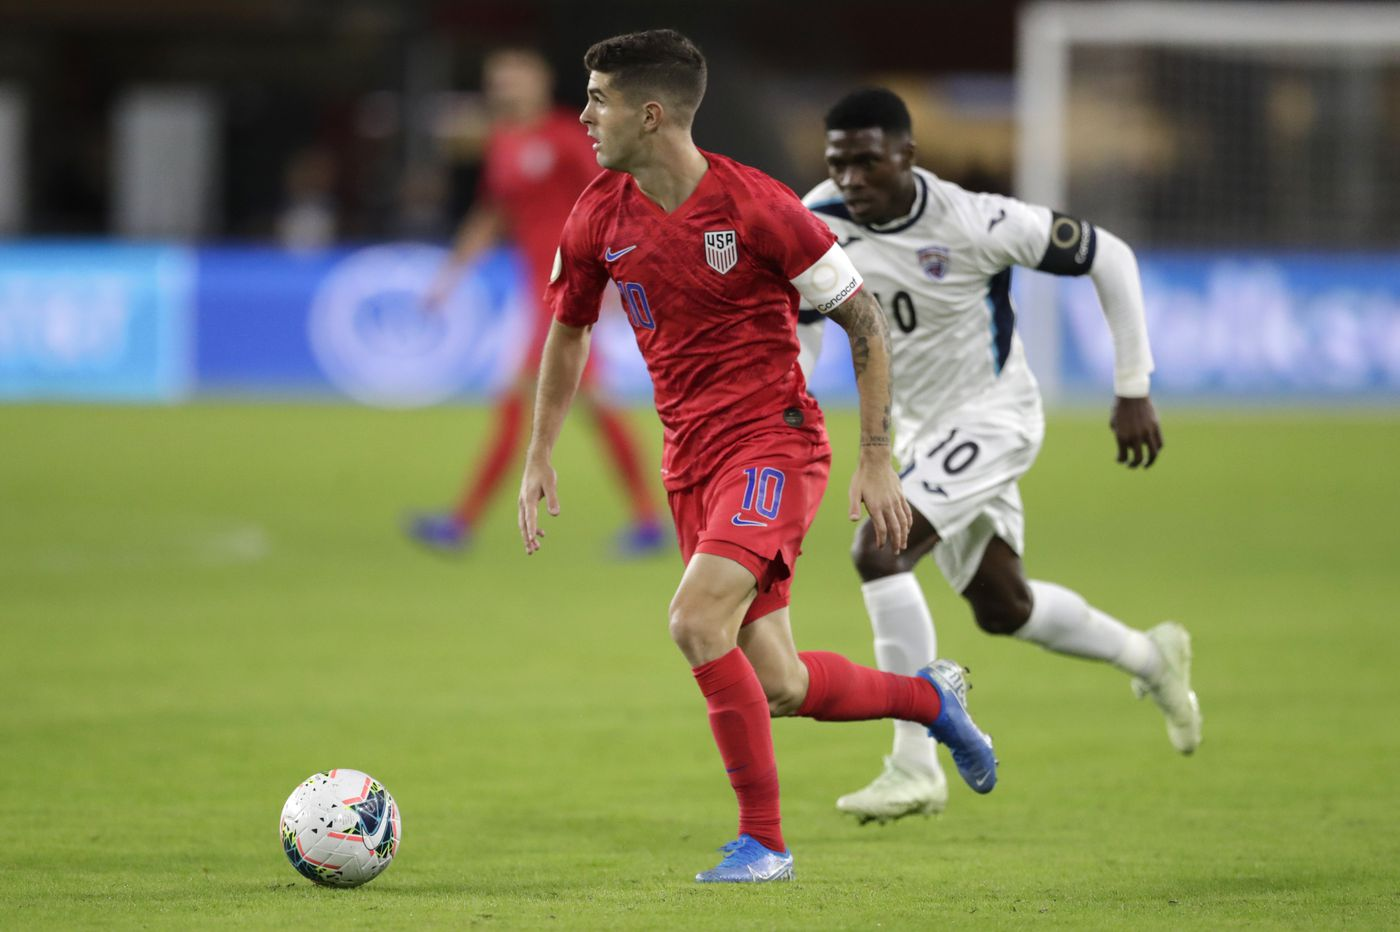 Christian Pulisic, Josh Sargent and Jordan Morris show talent and chemistry in USMNT's win over Cuba